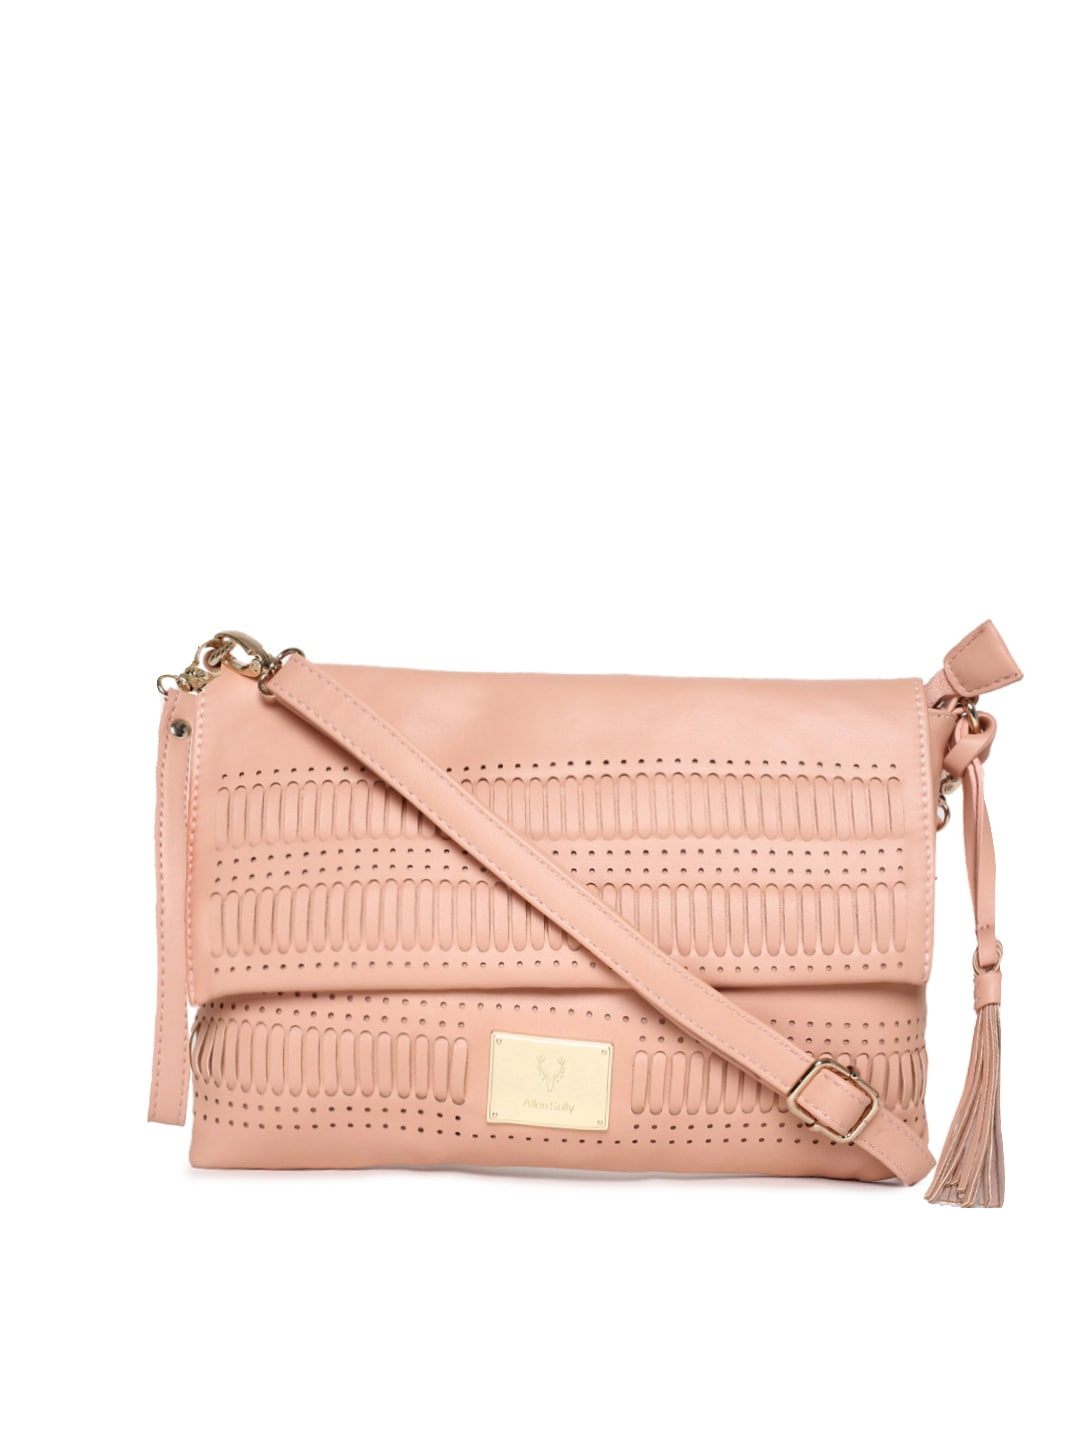 ae5067fa340 Handbags And Bags - Buy Handbags And Bags online in India